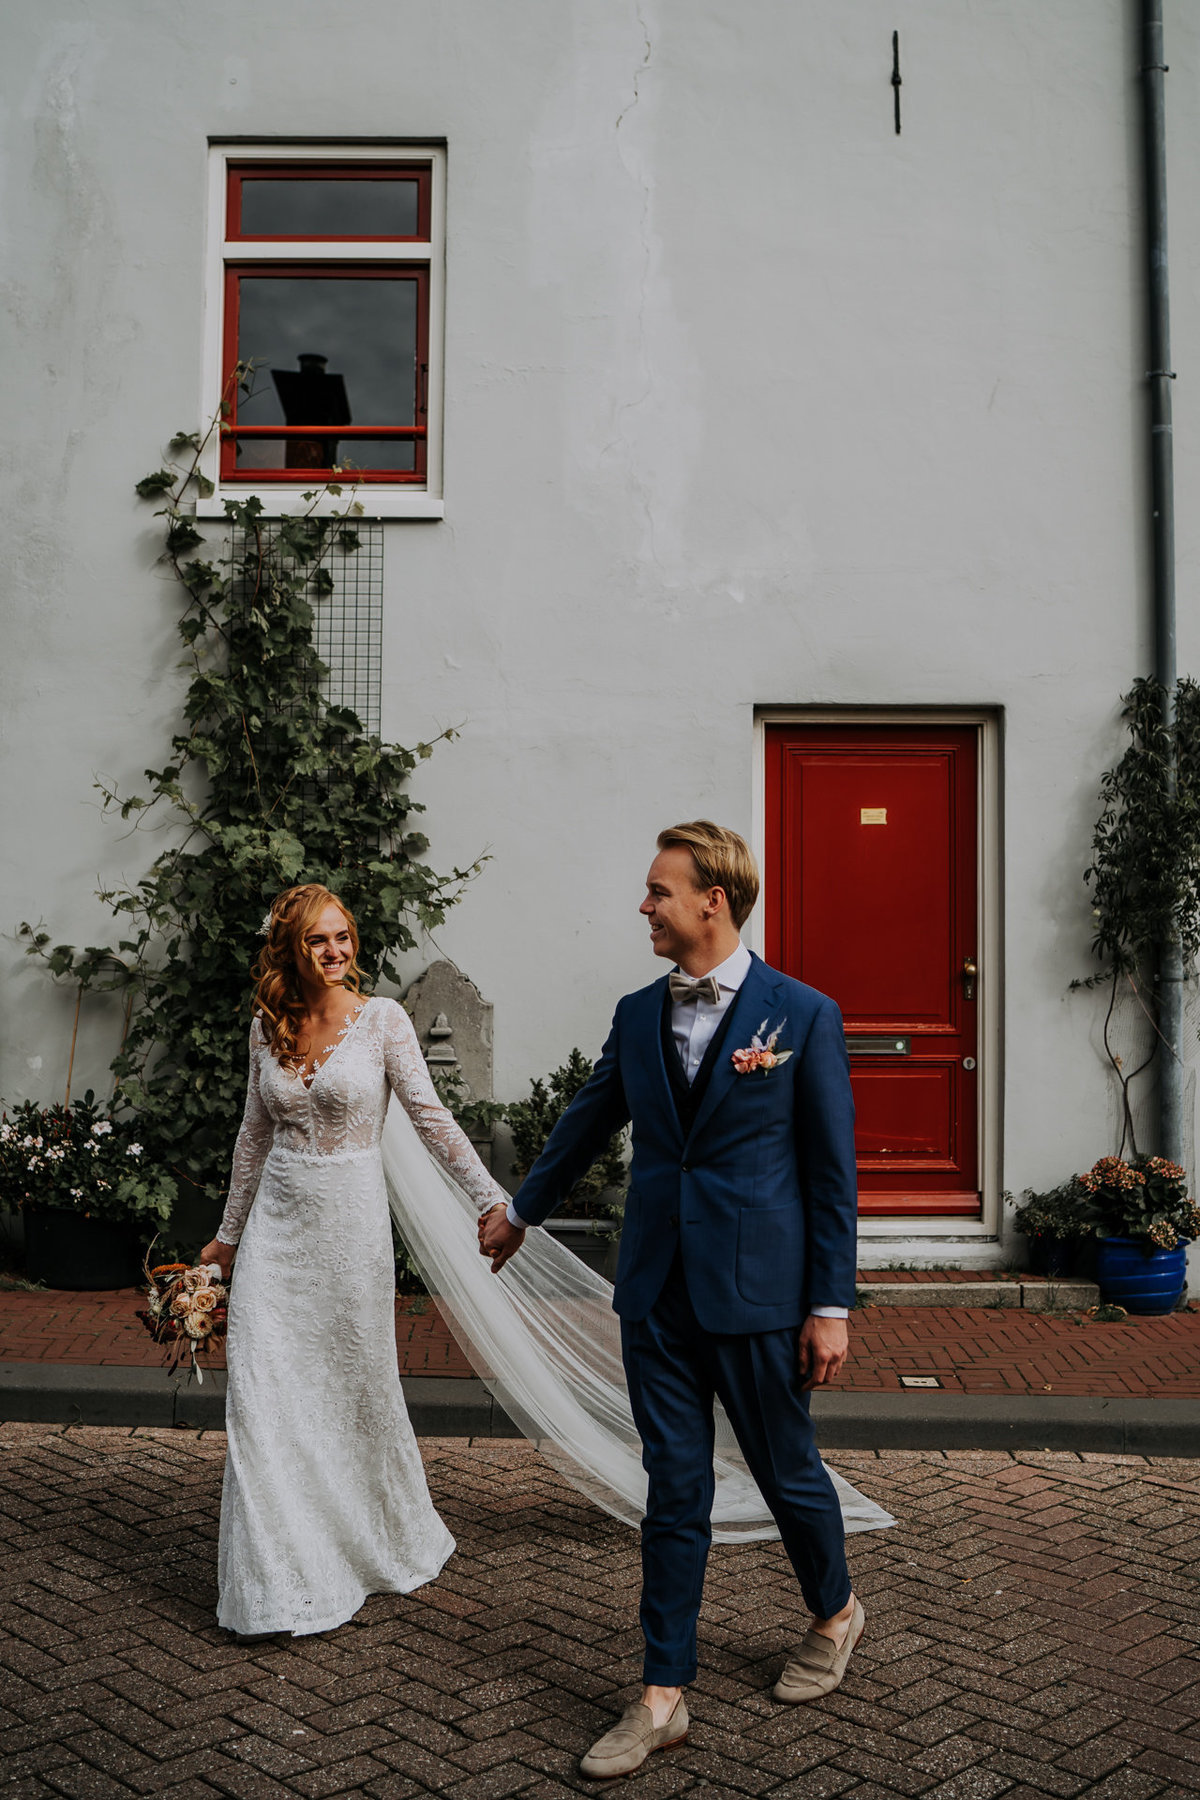 Wedding-shoot-Dorine&Jerry-door-Lotte-Bosschieter-photography_32